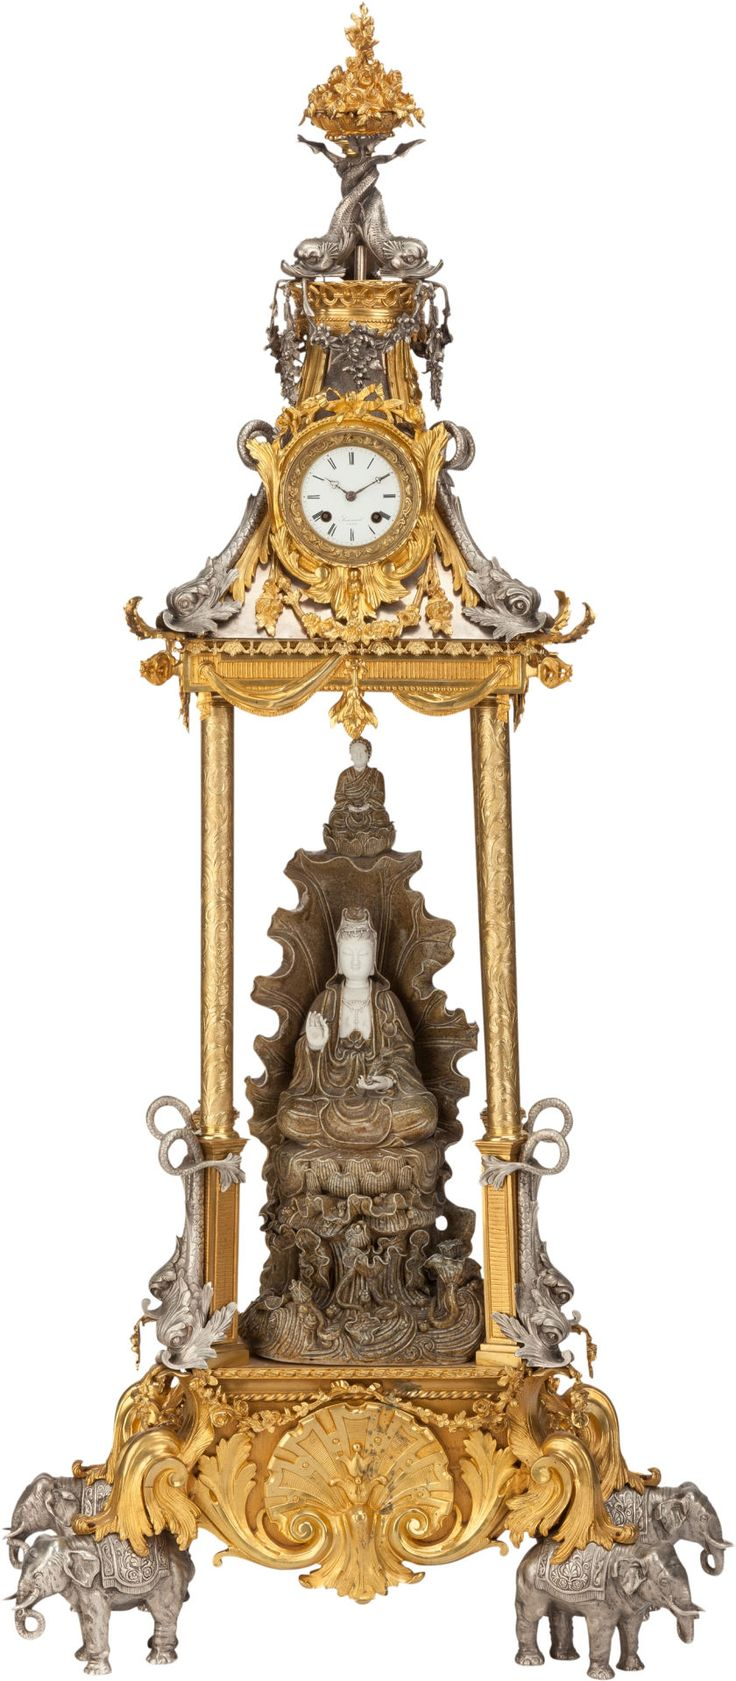 A LARGE FRENCH SILVERED, GILT BRONZE AND PORCELAIN CHINOISERIE CLOCK, Simiand, Paris, France, late 19th century.